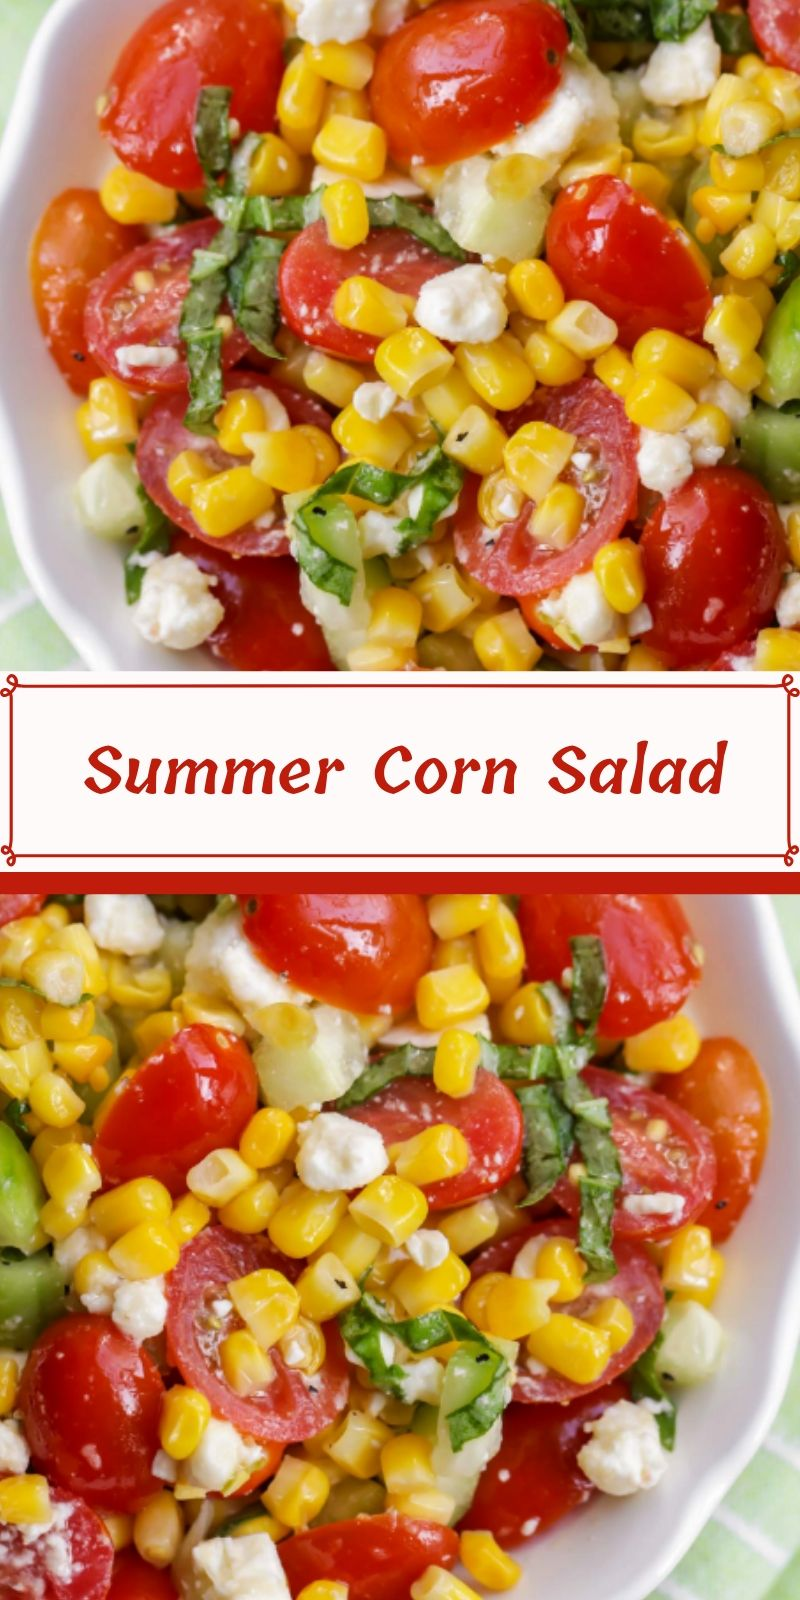 https://lilluna.com/summer-corn-salad/